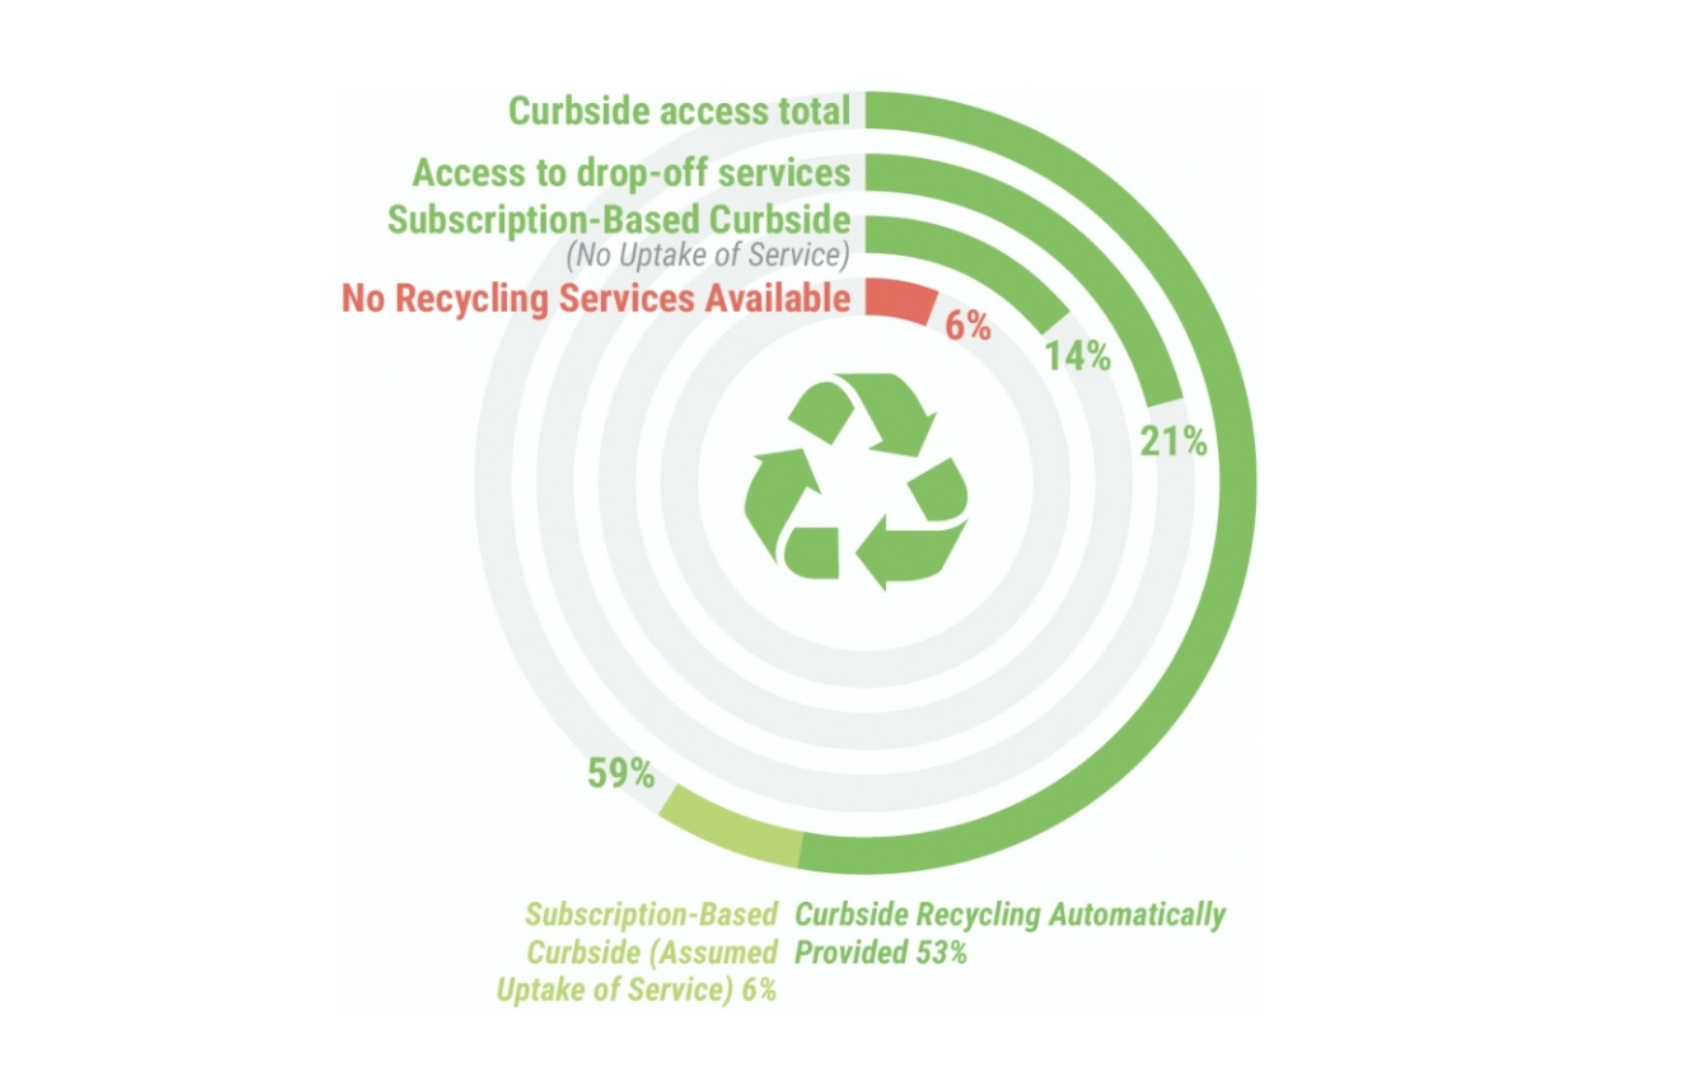 Estimated number of households with various types of recycling access, adapted from the 2020 State of Curbside Recycling Report by The Recycling Partnership